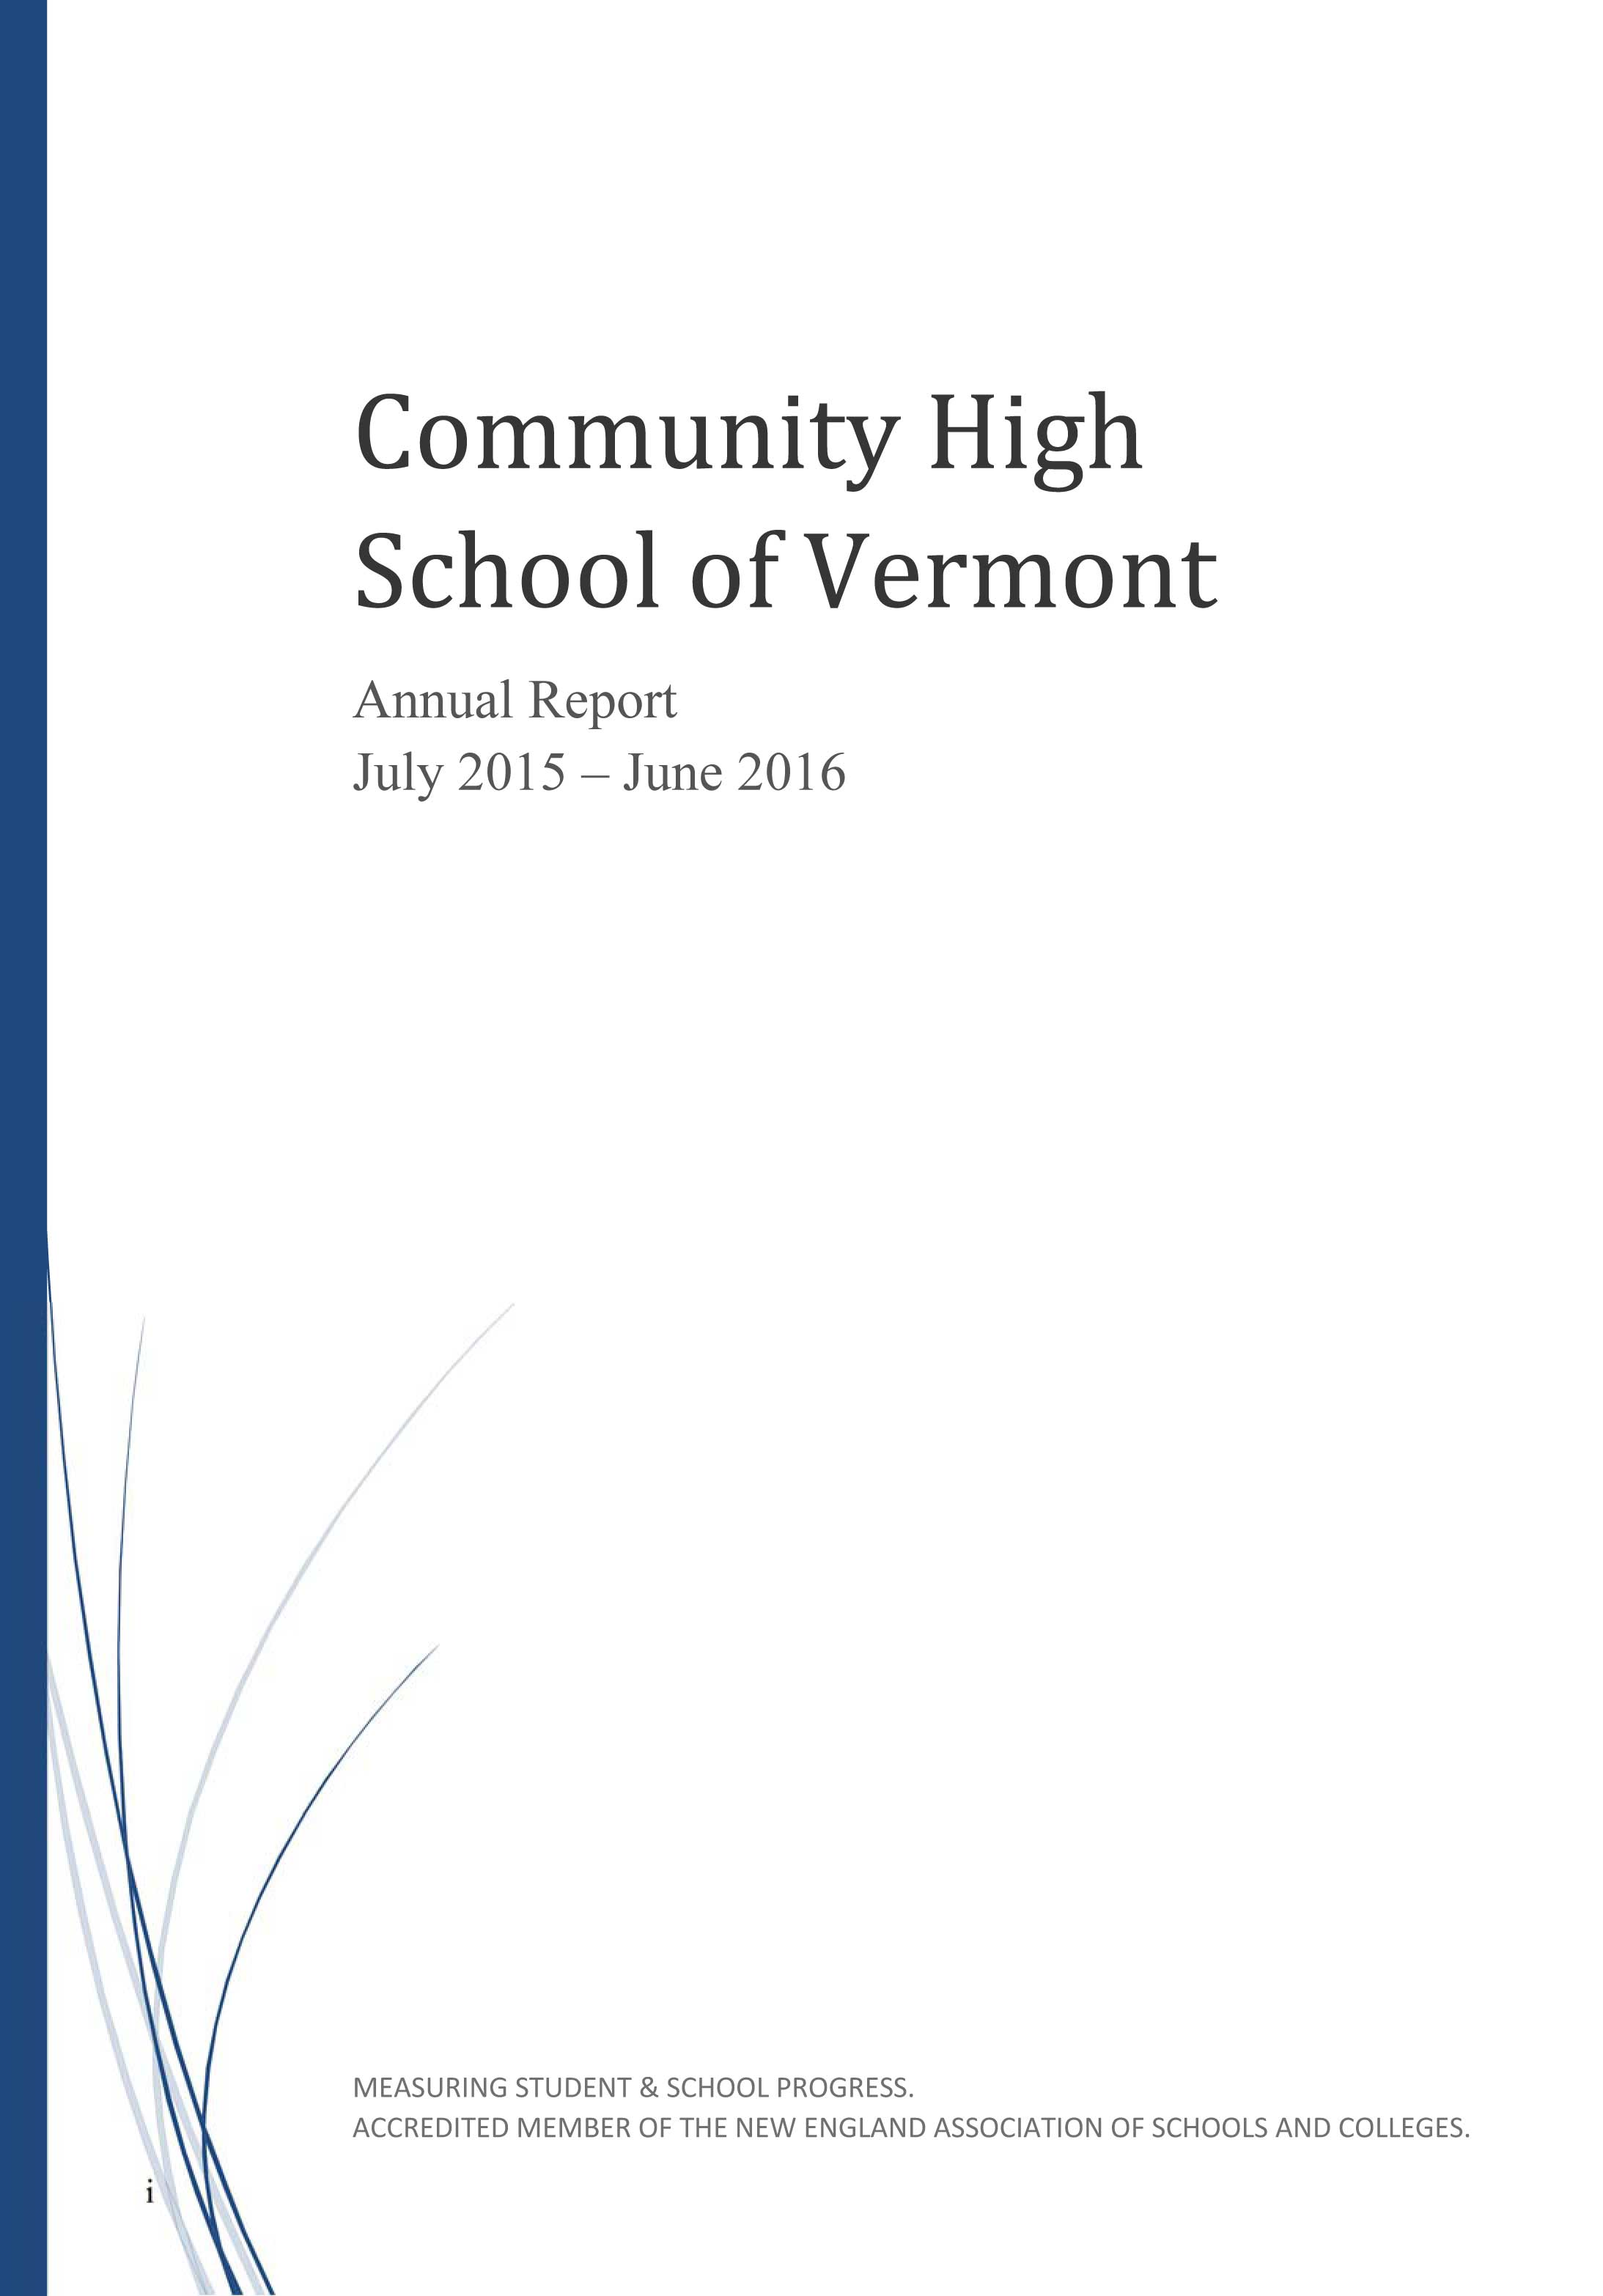 2015-2016 cover